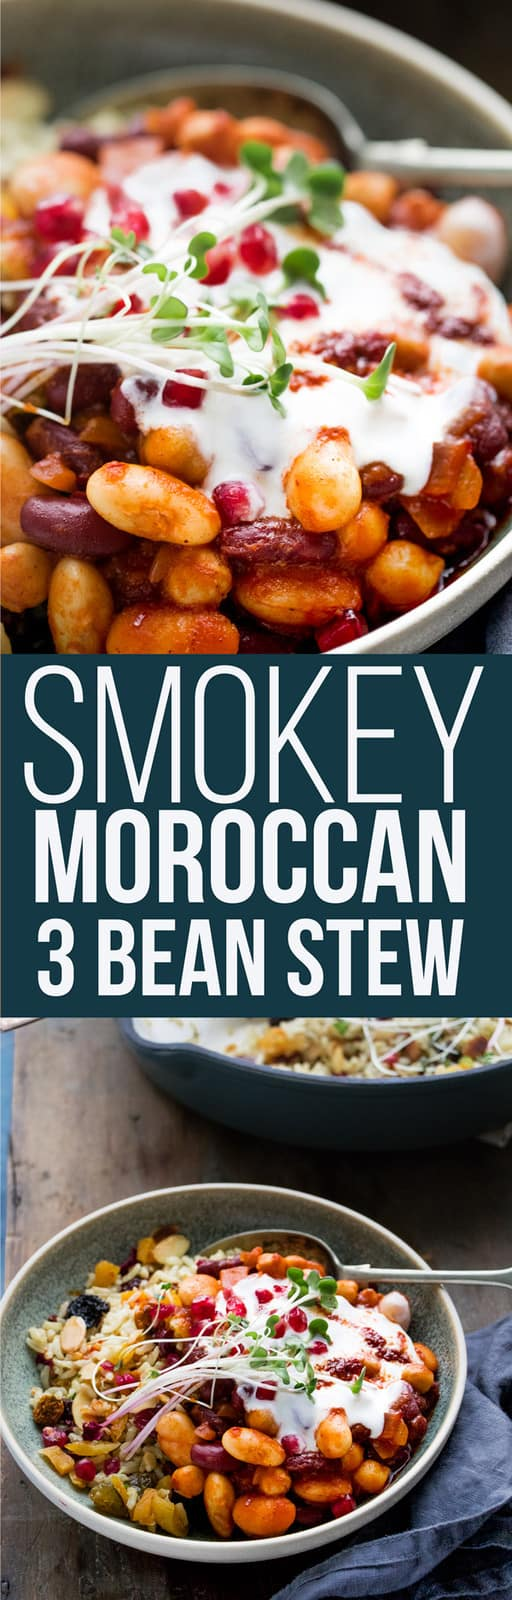 This smokey Moroccan 3 bean stew is hearty and warming. A protein packed vegan bowl of tomatoes, spices and beans brought together with spicy and rosy Harissa sauce. It's a 15 minute vegan dinner perfect for cold nights. #moroccan #onepotdinner #vegan #plantbased